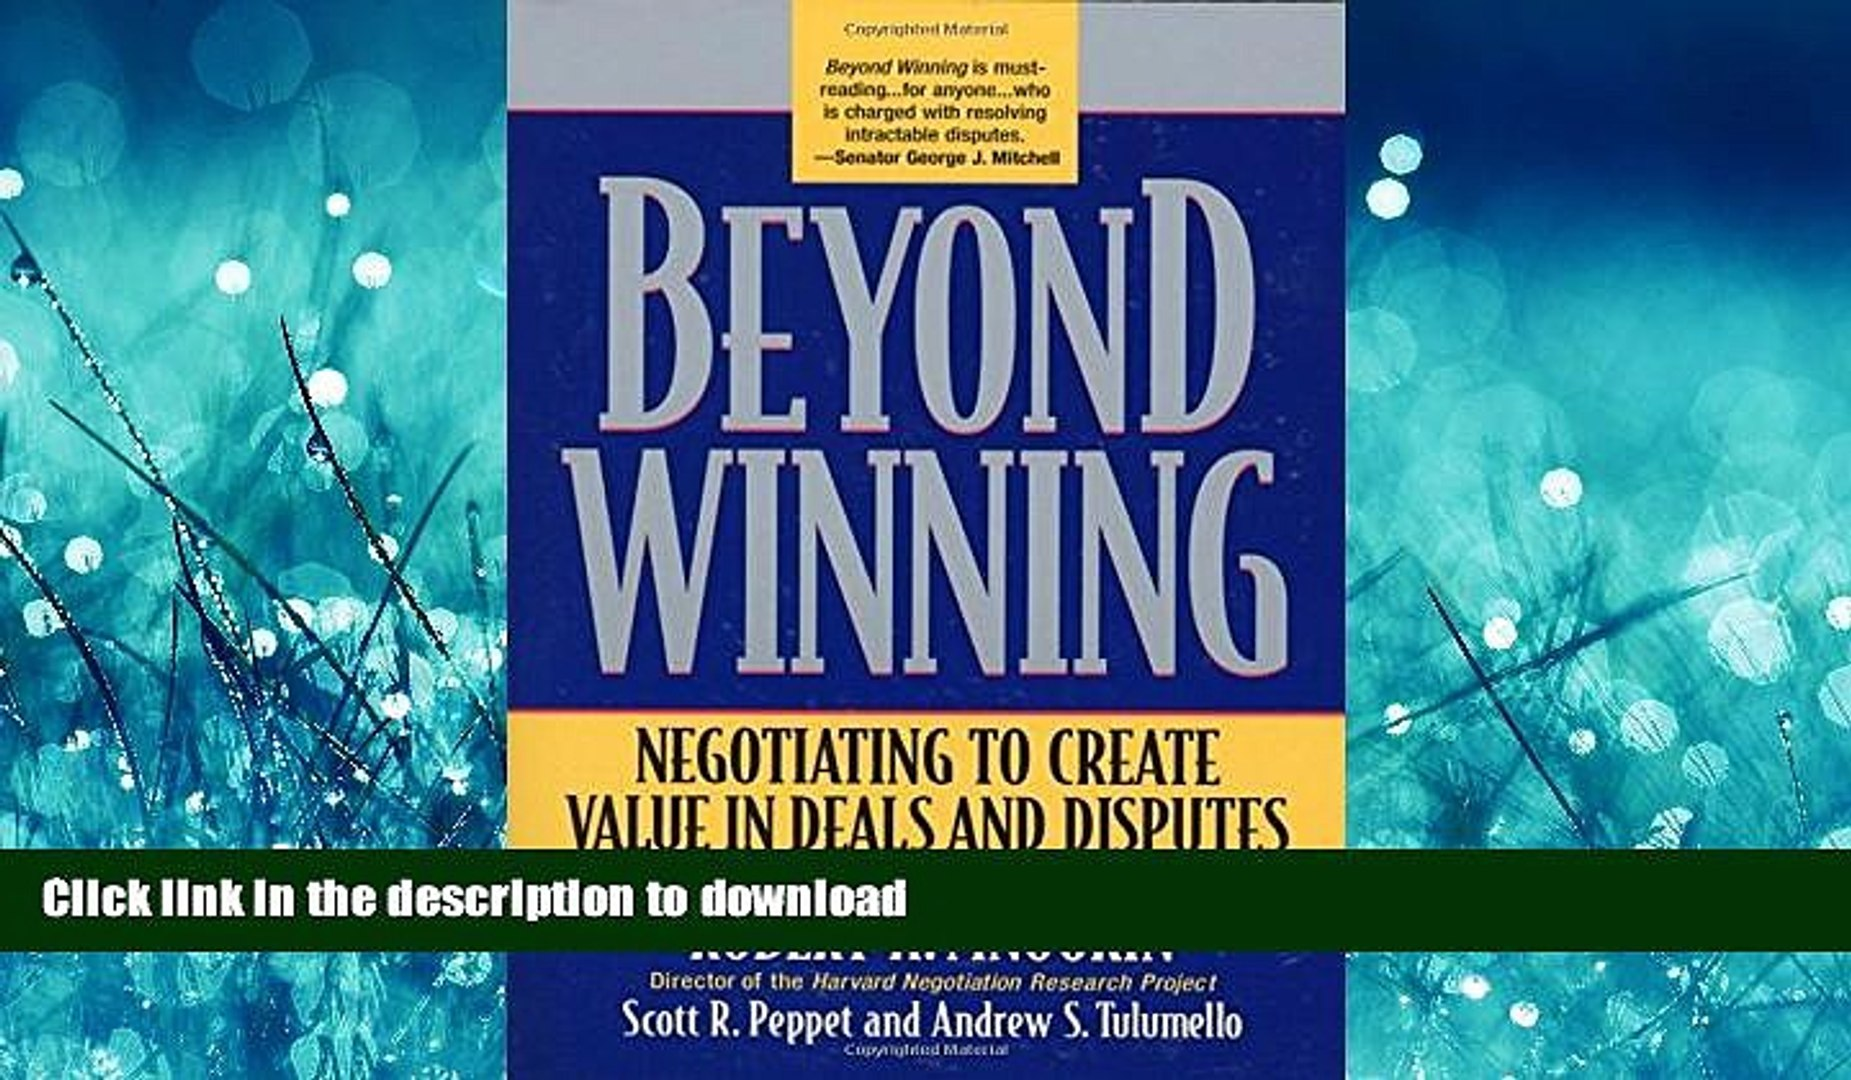 Beyond Winning Negotiating to Create Value in Deals and Disputes